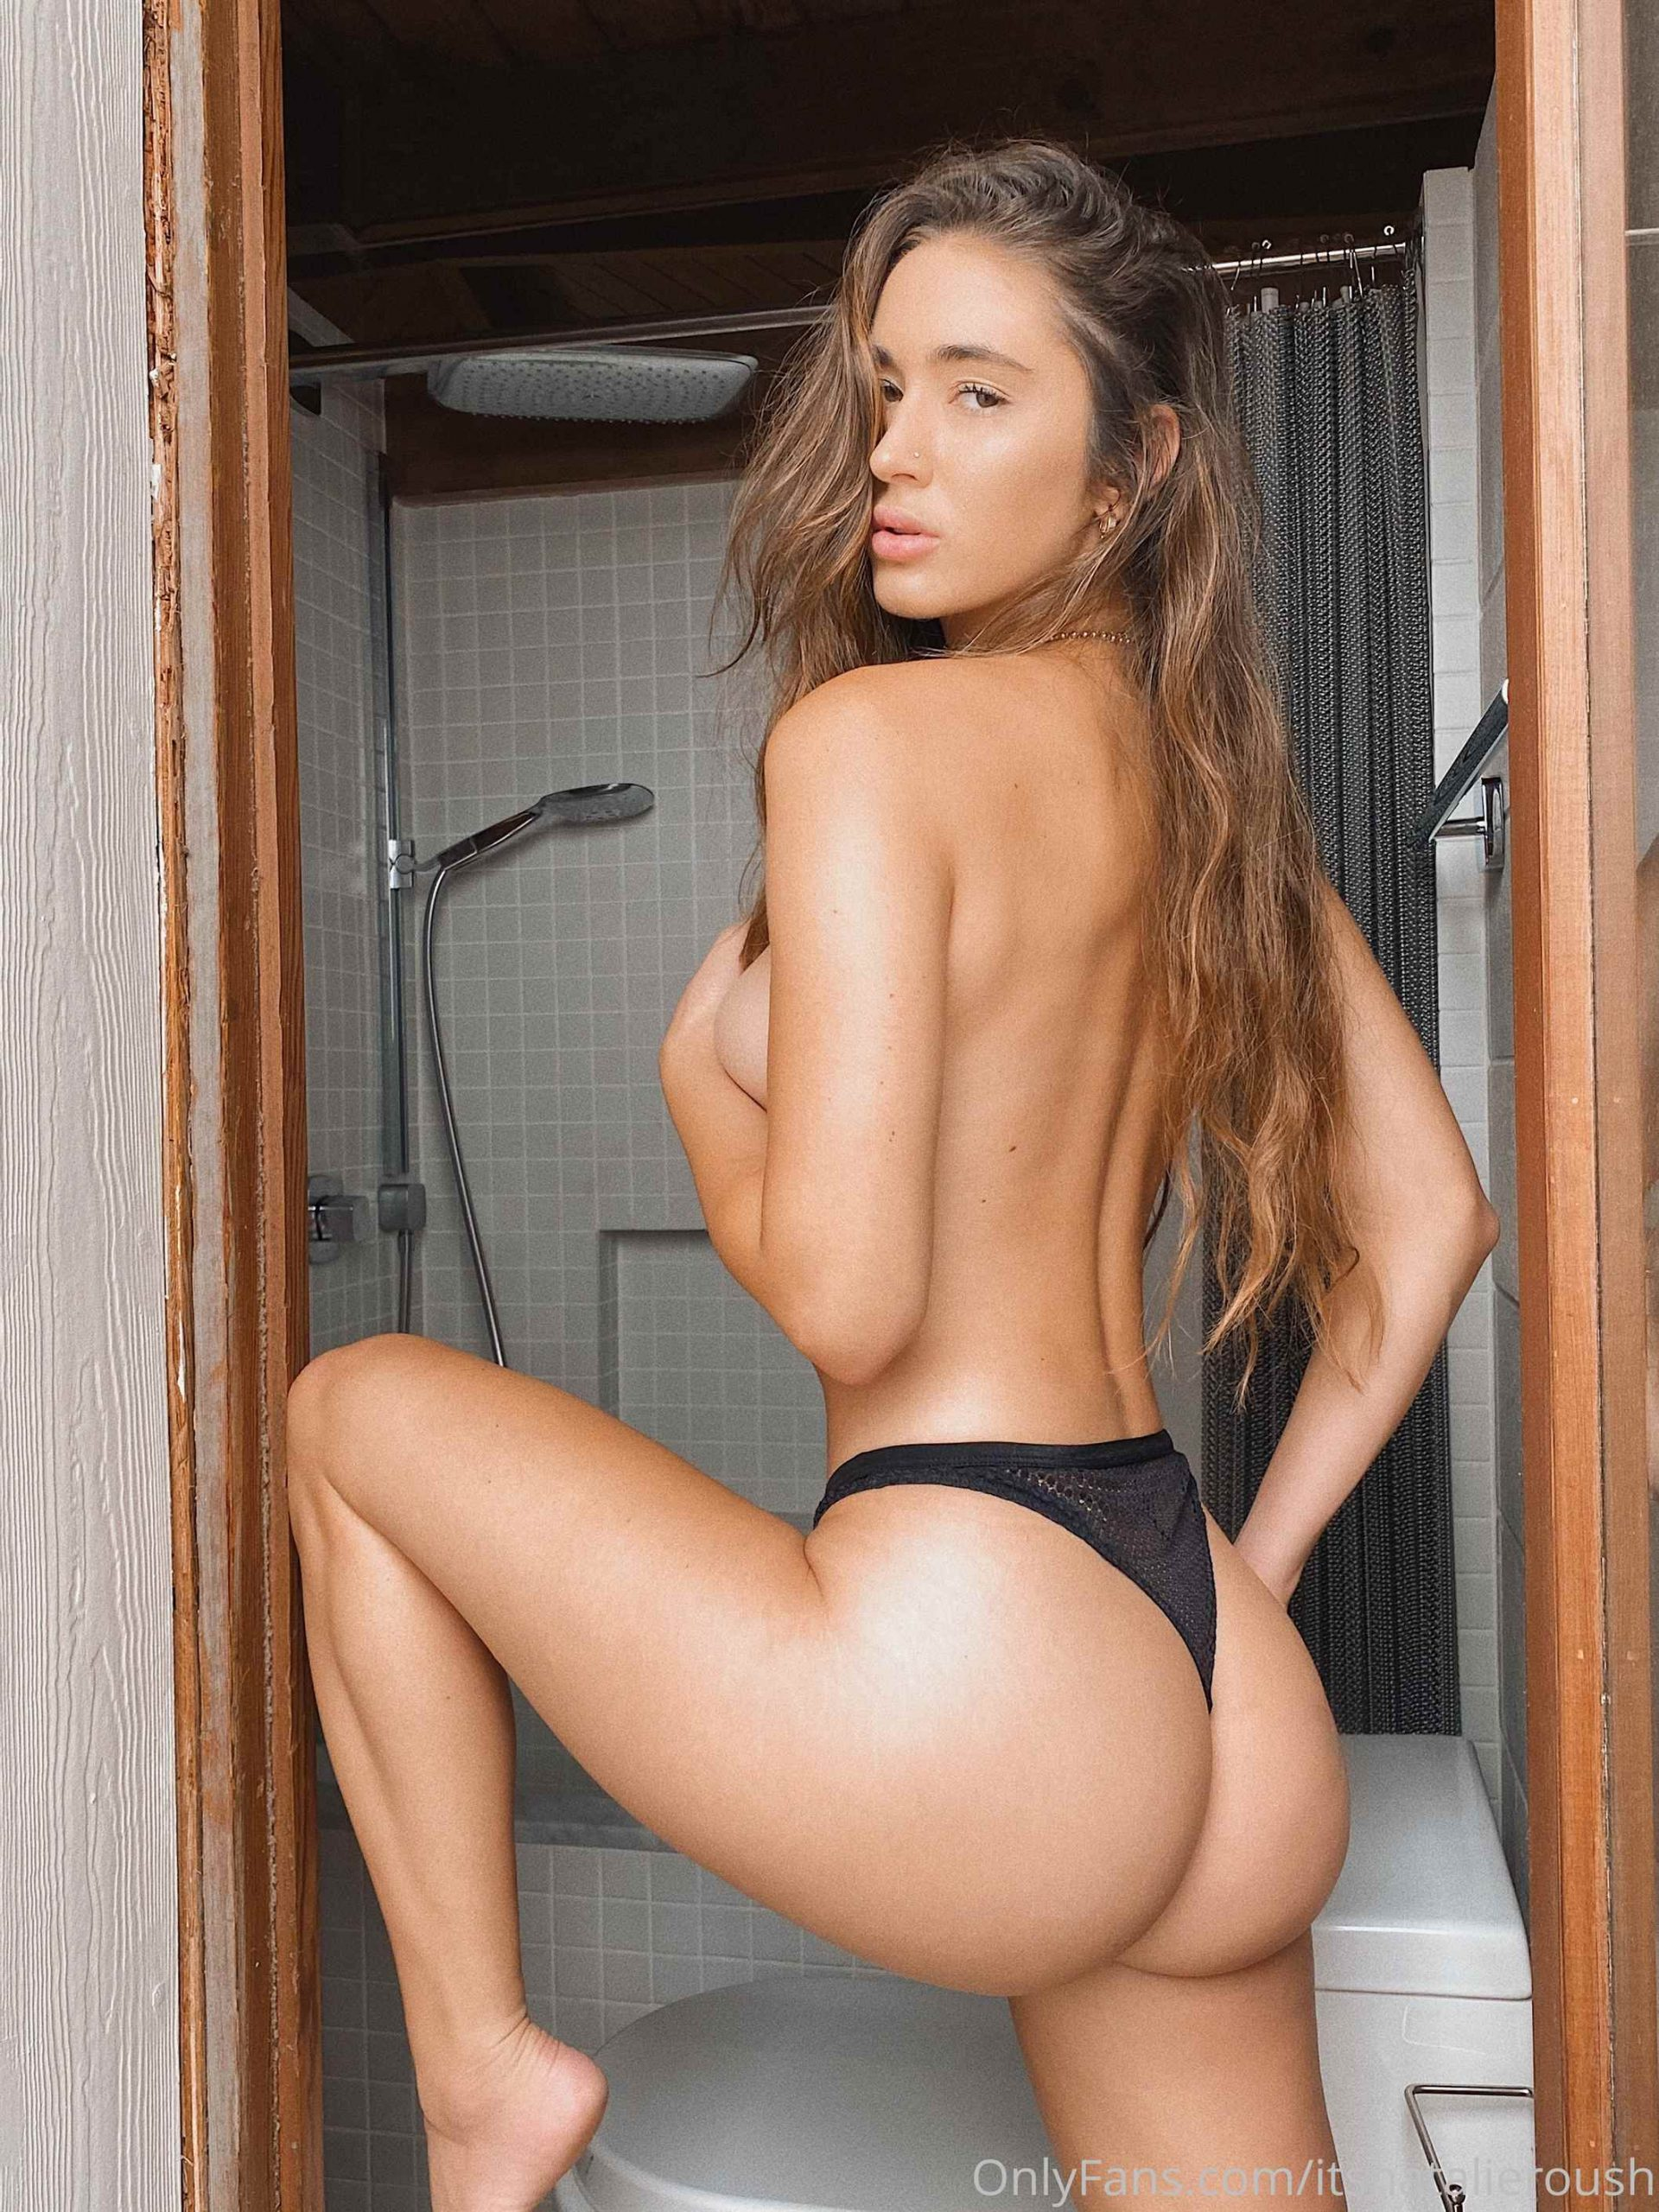 Natalie Roush Nude Leaked Onlyfans Photos 0057